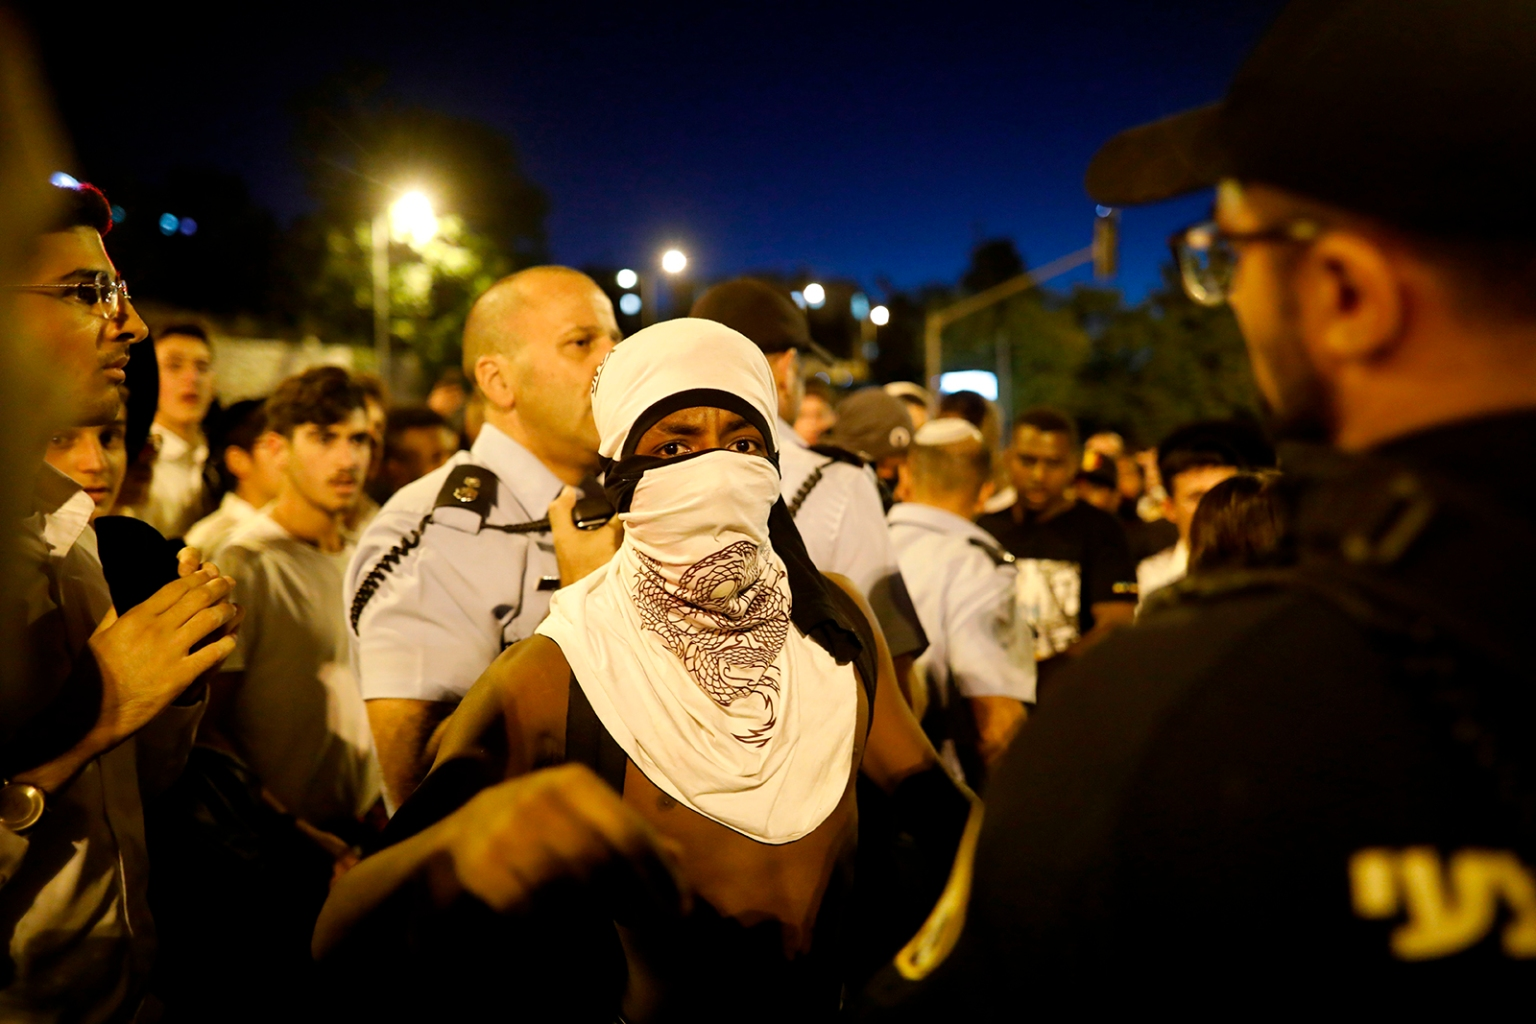 A masked member of the Israeli Ethiopian community gestures in front of policemen as demonstrators block the main entrance to Jerusalem on July 2 to protest the death of Solomon Tekah, a young man of Ethiopian origin who was killed by an off-duty police officer. MENAHEM KAHANA/AFP/Getty Images